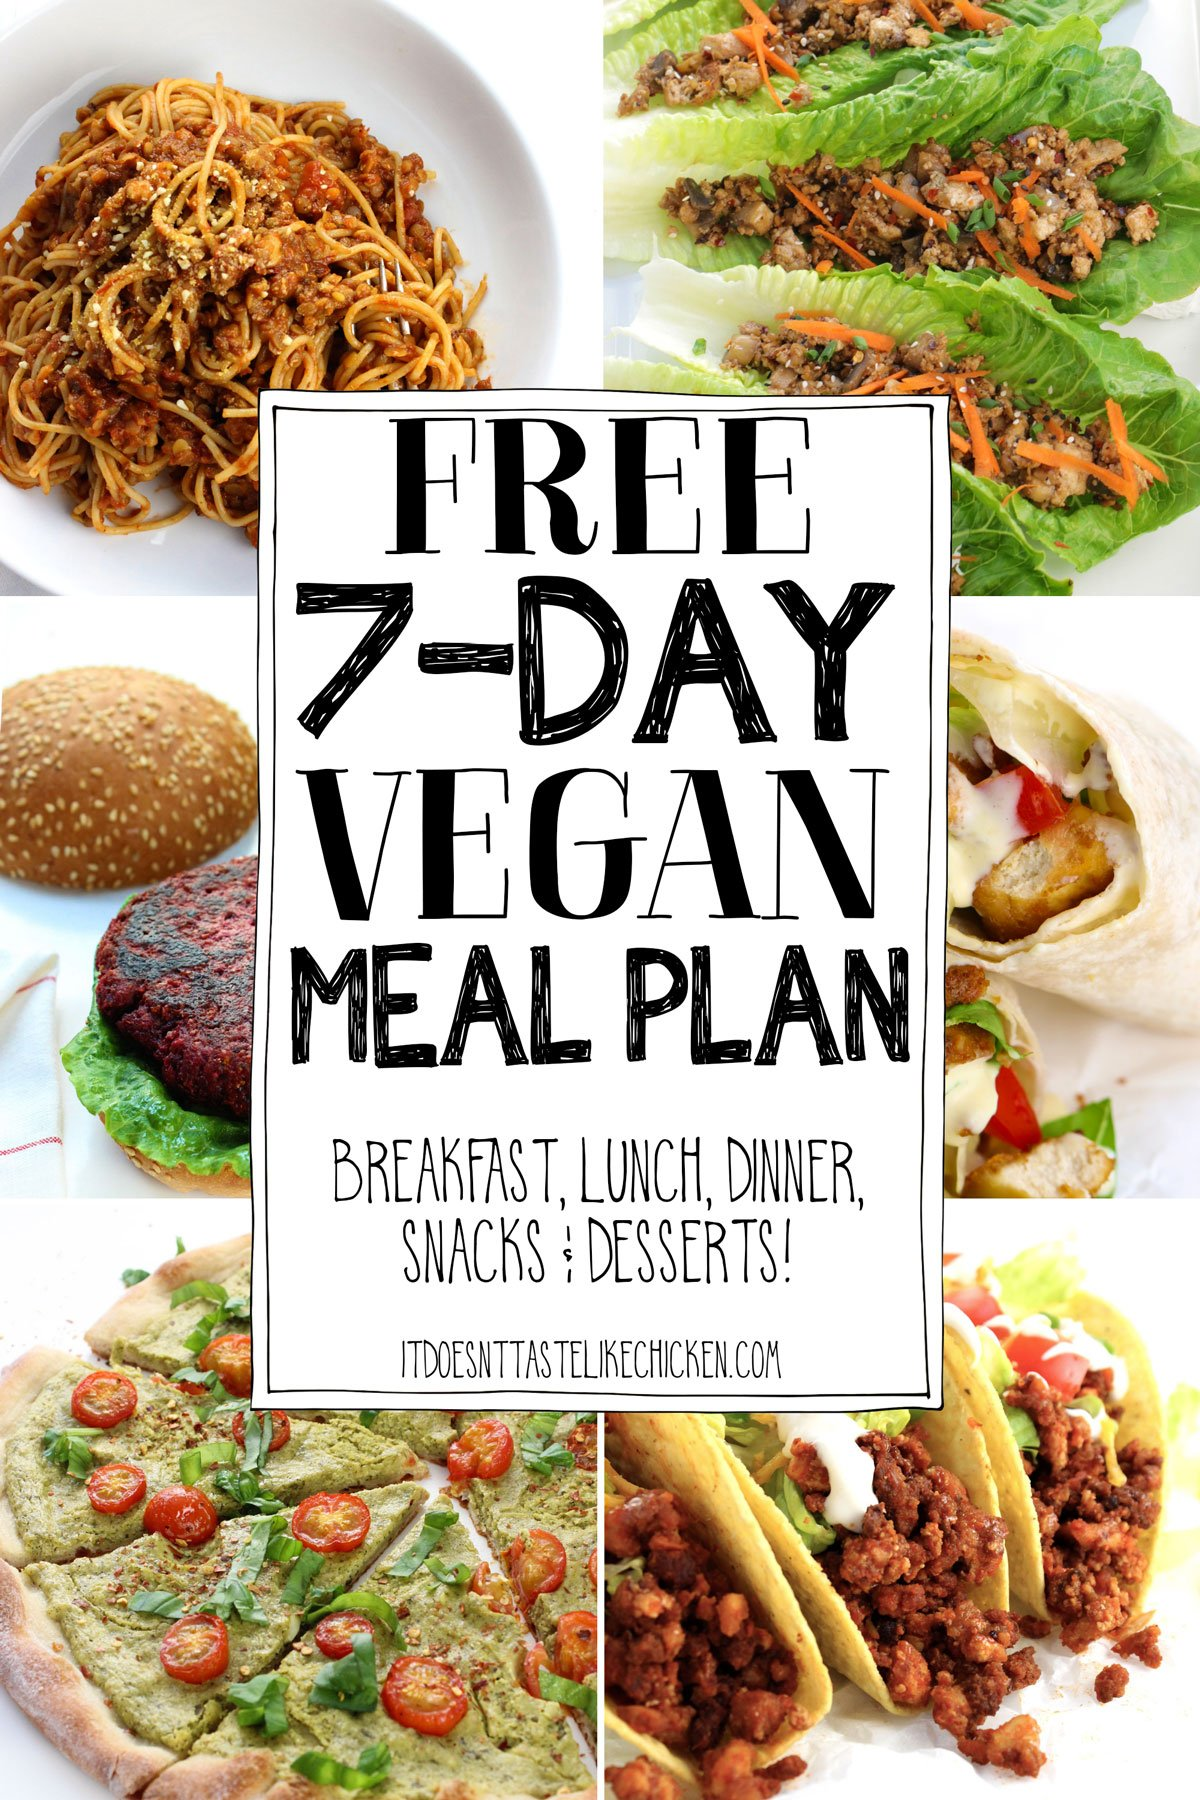 A free 7-day easy vegan meal plan including recipes for breakfast, lunch, dinner, snacks, and dessert! The perfect collection of plant-based recipes for beginners but delicious enough for the pros! #itdoesnttastelikechicken #vegan